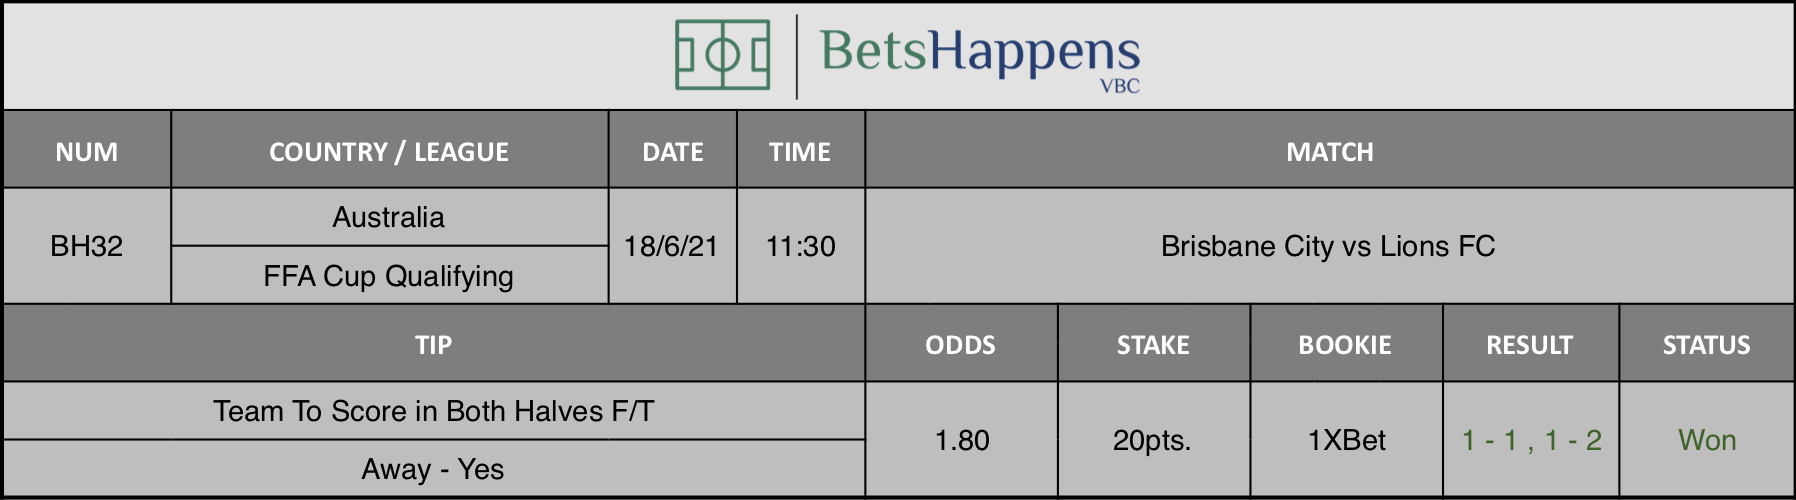 Results of our tip for the Brisbane City vs Lions FC Match Team To Score in Both Halves F/T Away - Yes is recommended.